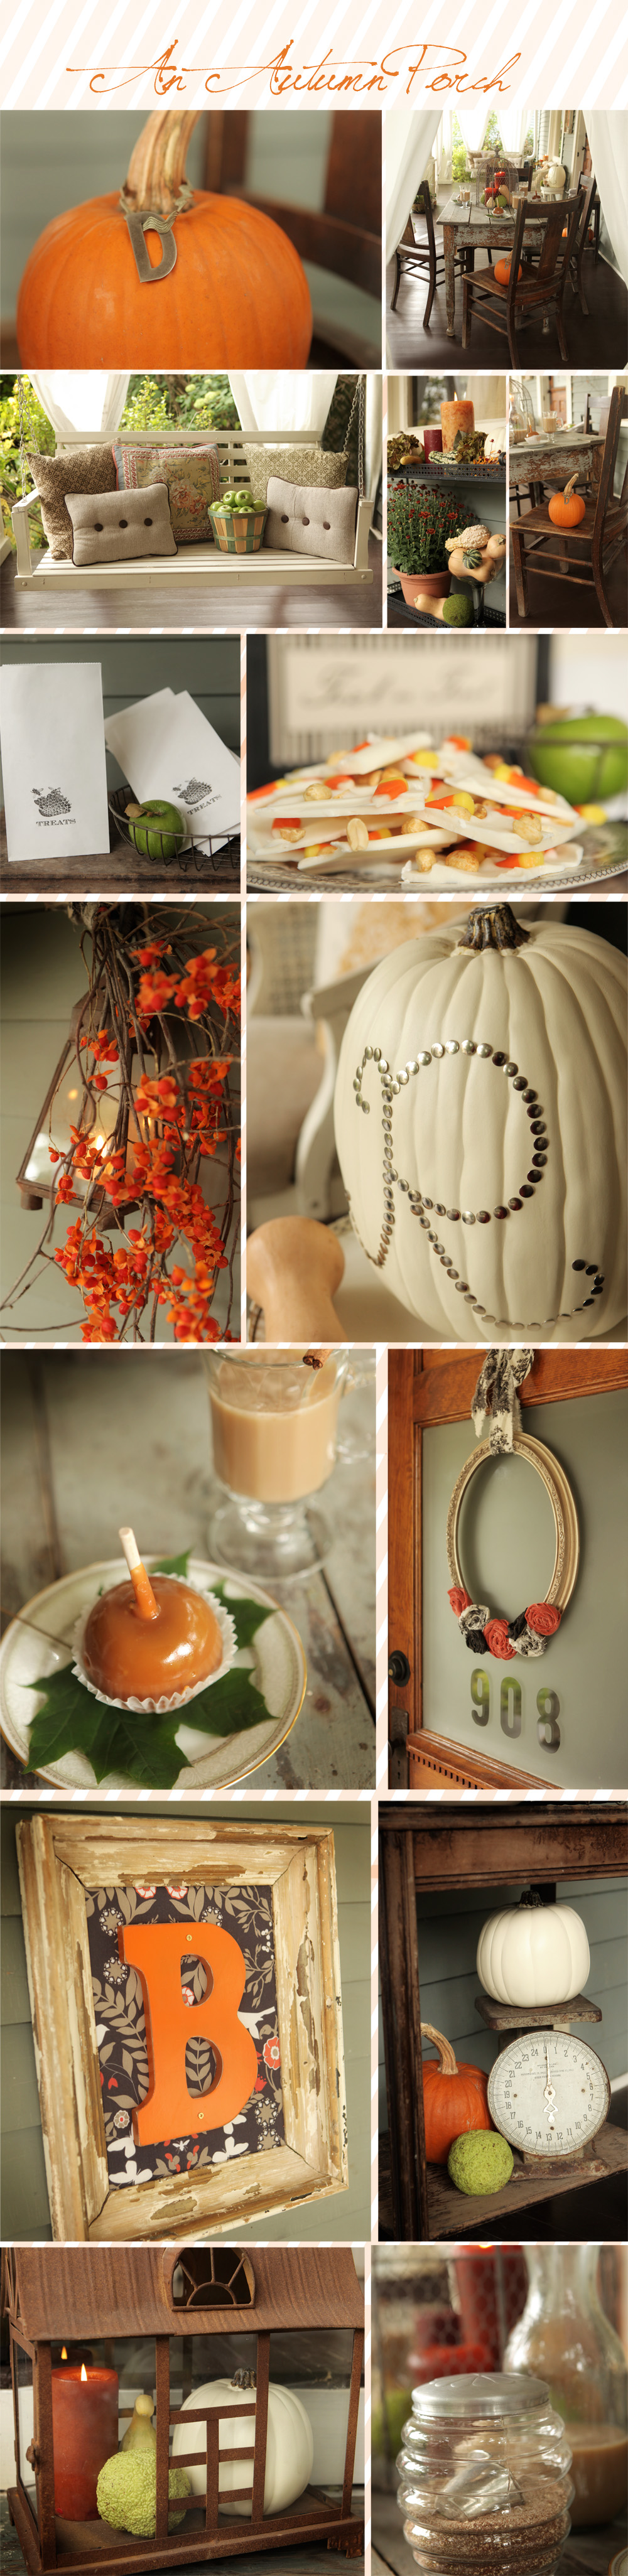 An Autumn Porch Montage